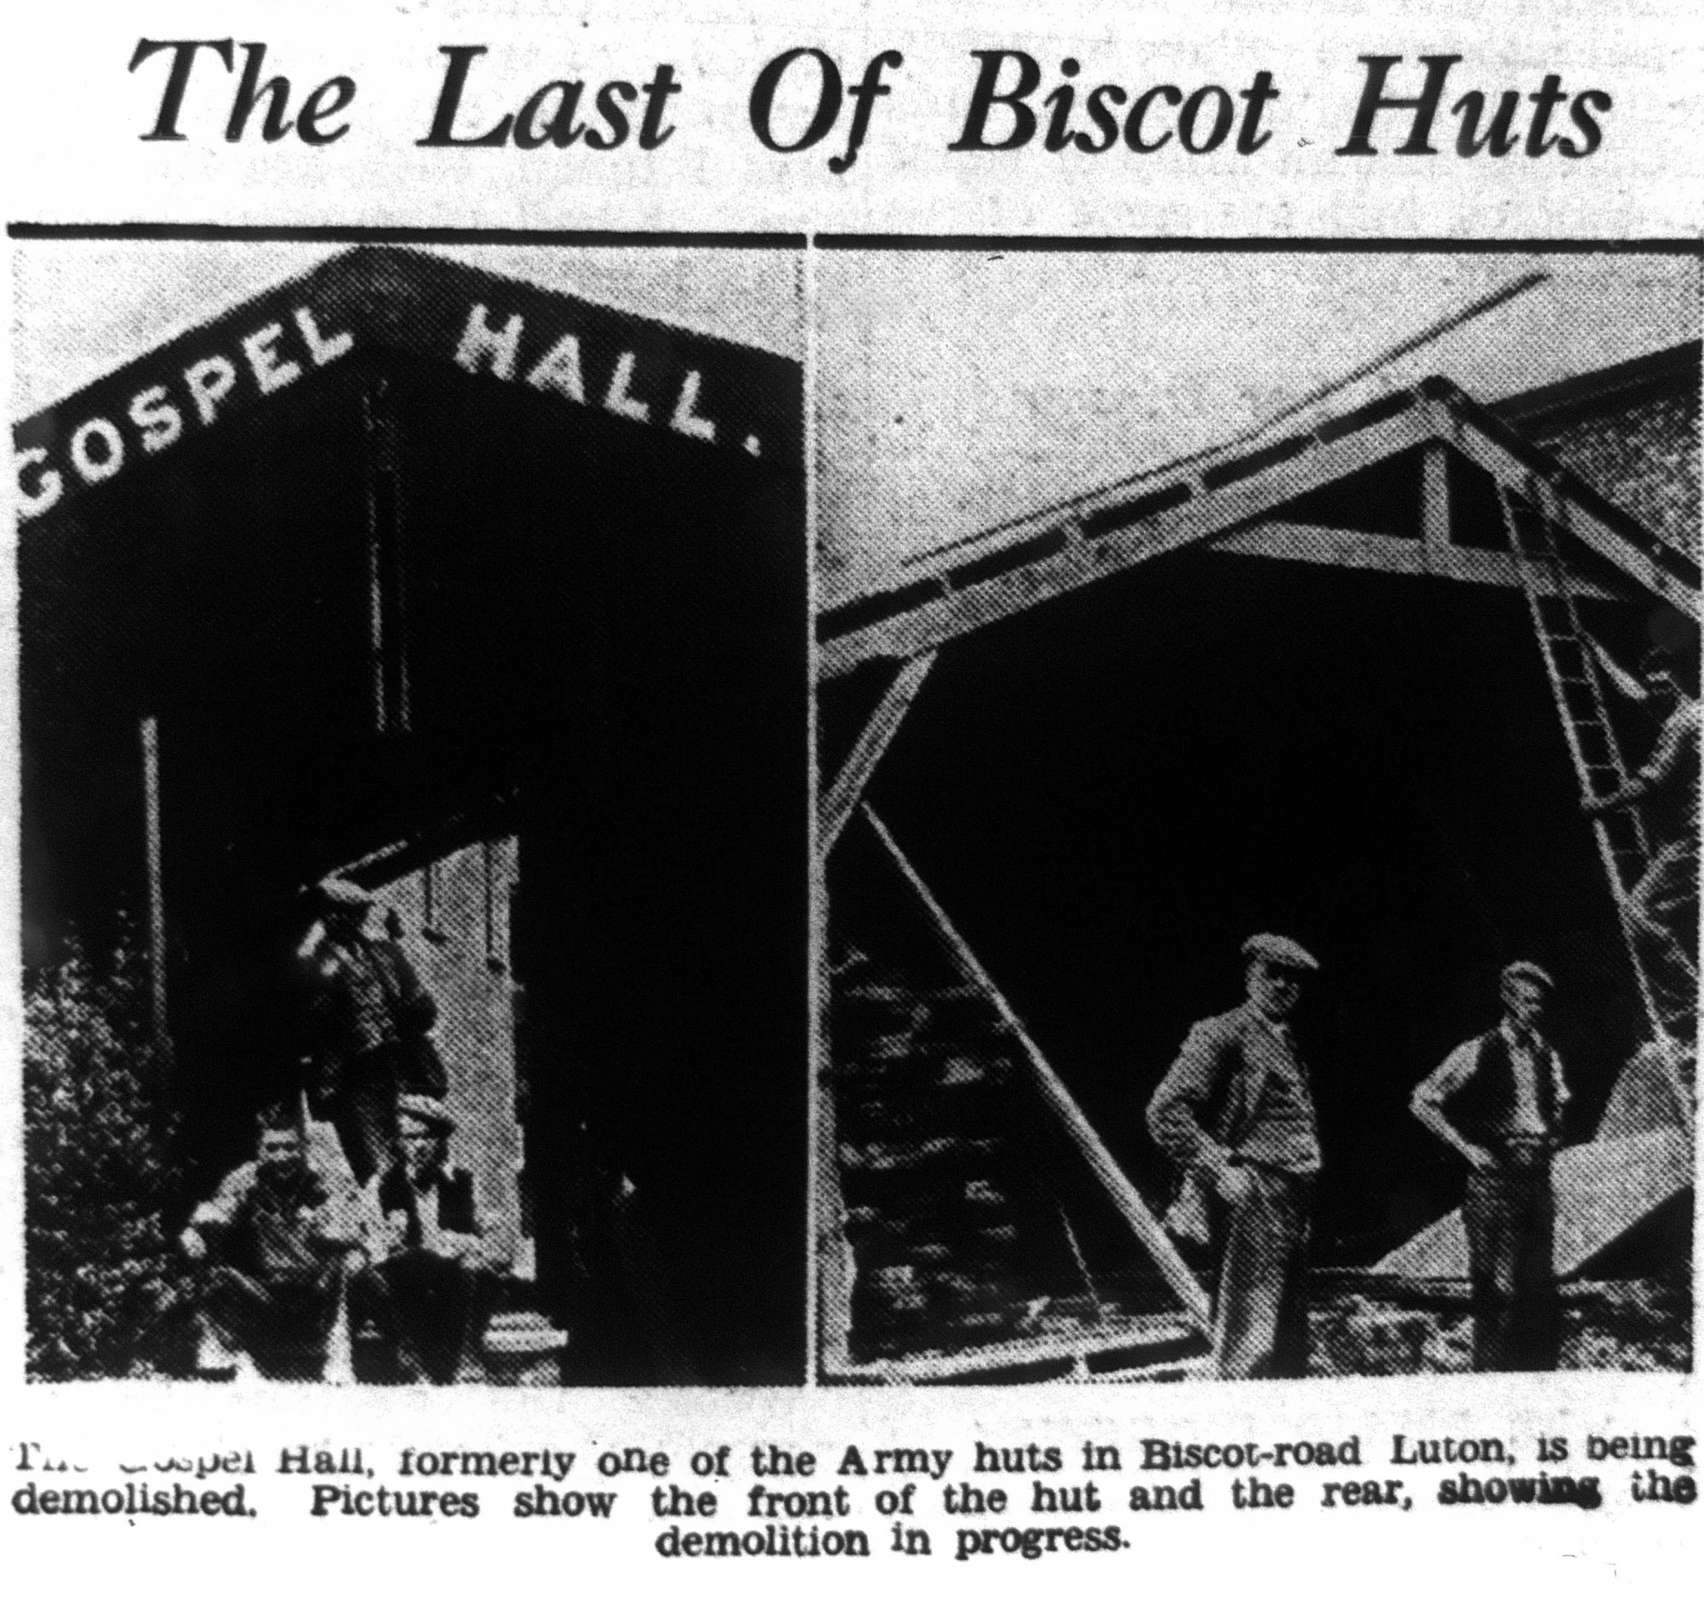 Last of the huts at Biscot under demolition 1937